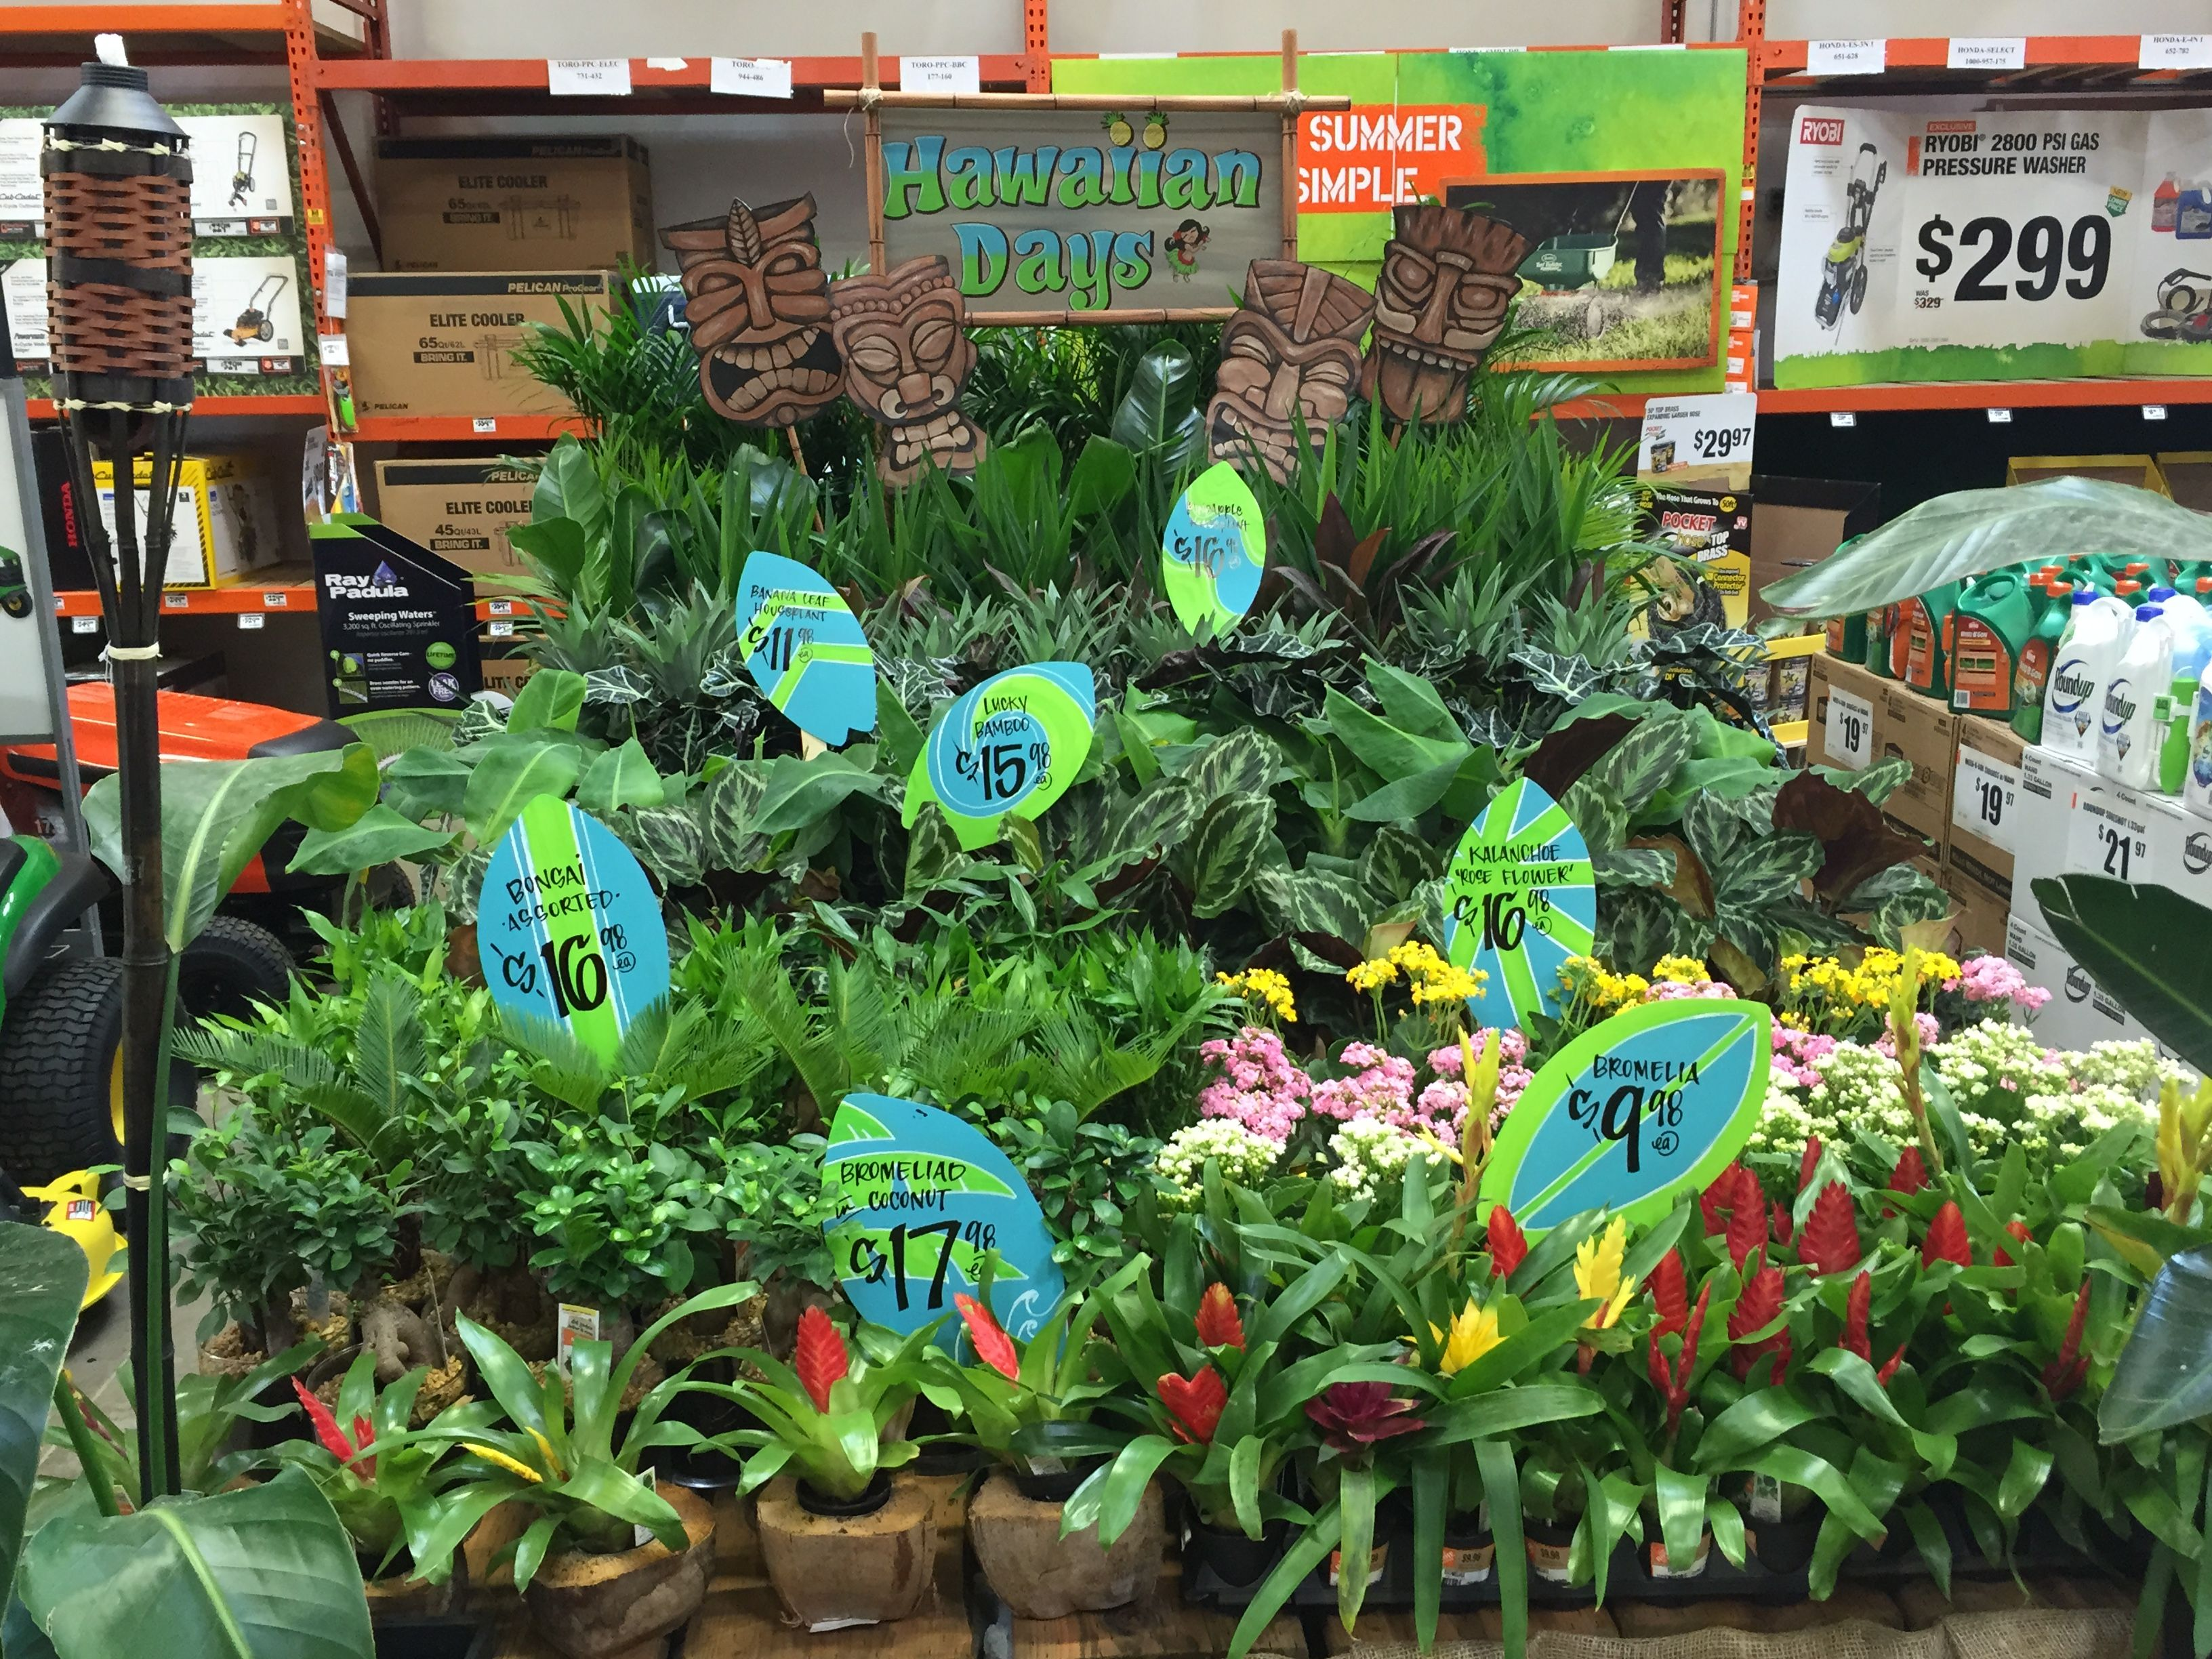 Pin By Bobbi Johnson On Home Depot Signs Garden Plants Home Depot